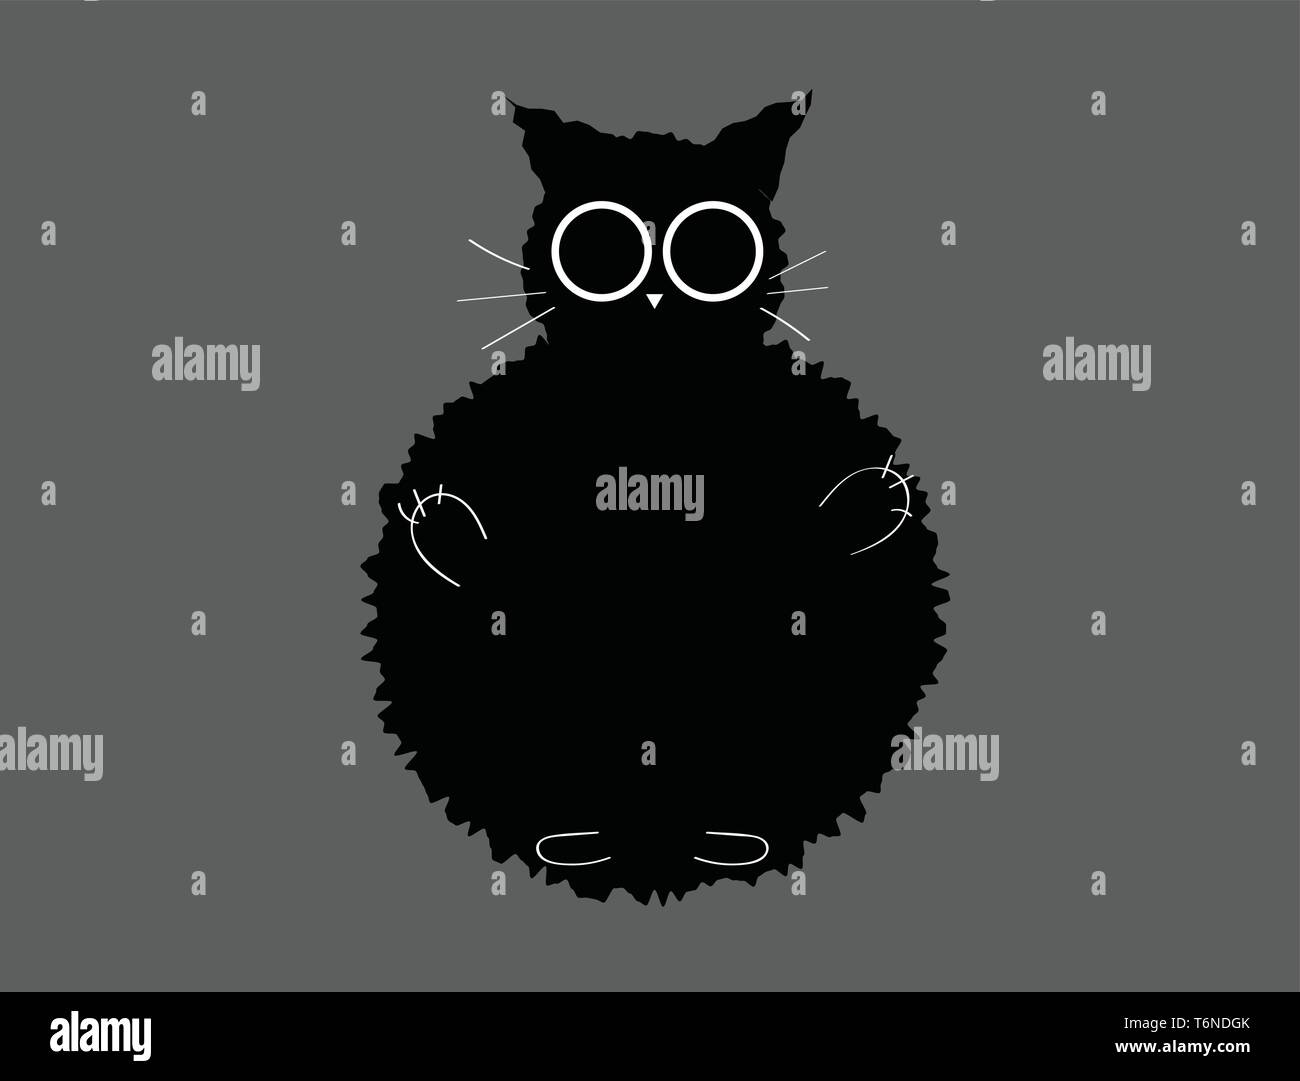 Portrait of a black furry cat with short ears  white whiskers  inverted triangle-like nose  white hands  and legs  over a grey background  vector  col Stock Vector